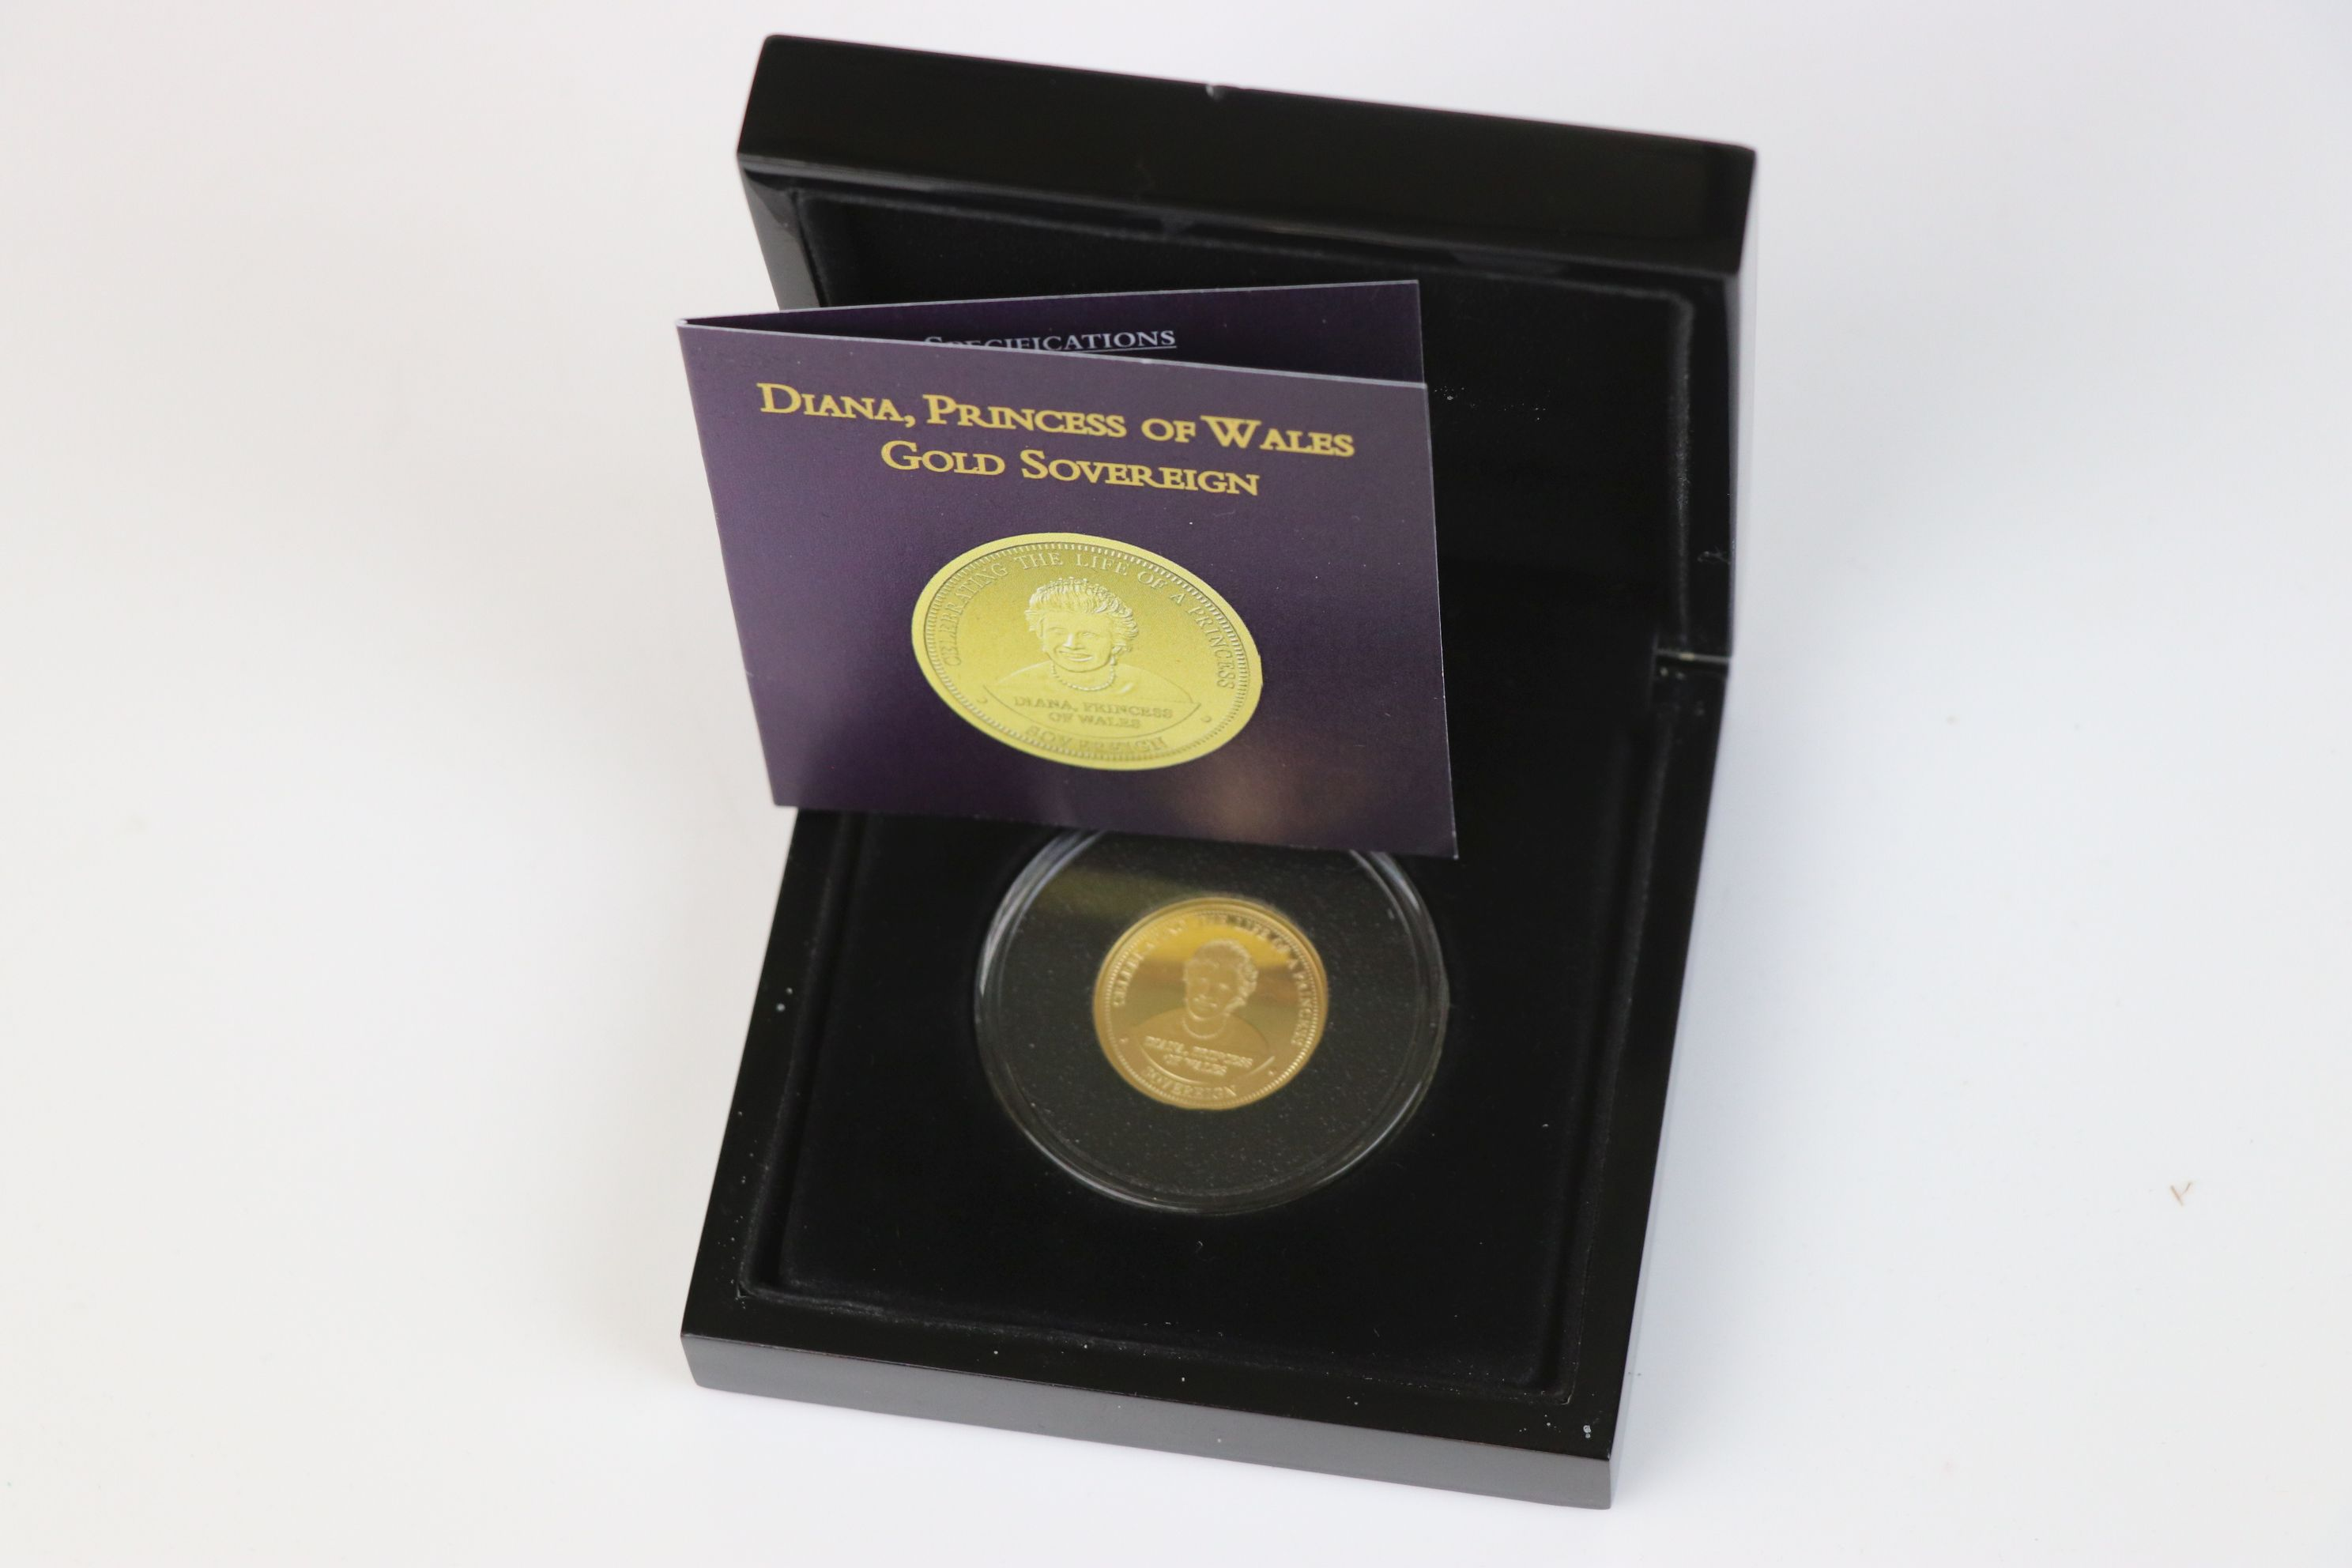 A cased Bradford Exchange limited edition Tristan Da Cunha 2007 Diana Princess of Wales gold proof